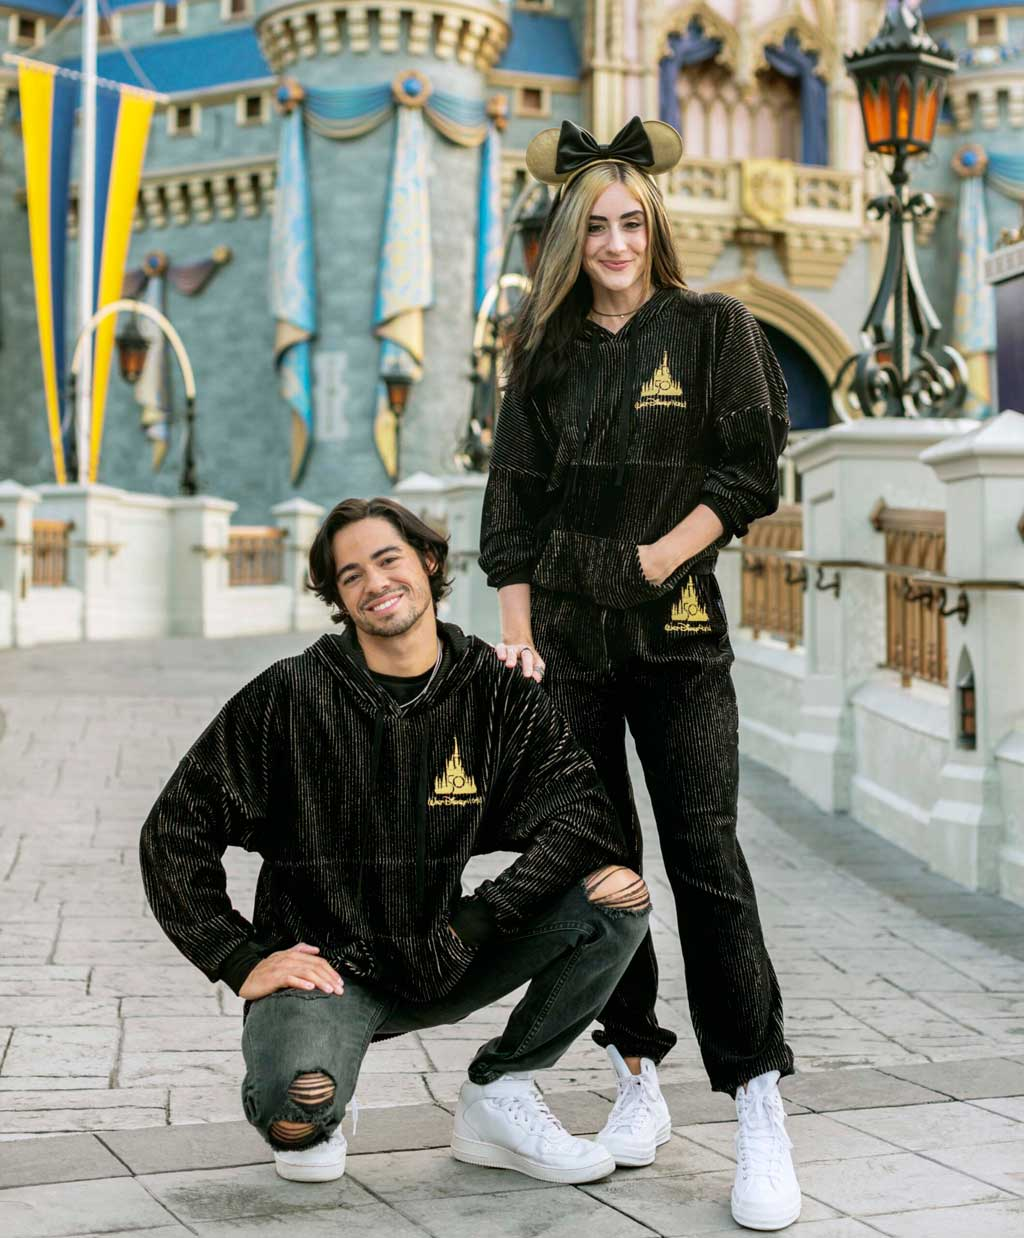 """The Luxe Logo Collection is a new merchandise line that will launch in November 2021 as part of """"The World's Most Magical Celebration,"""" an 18-month extravaganza that begins Oct. 1 at Walt Disney World Resort in Lake Buena Vista, Fla. (Disney)"""